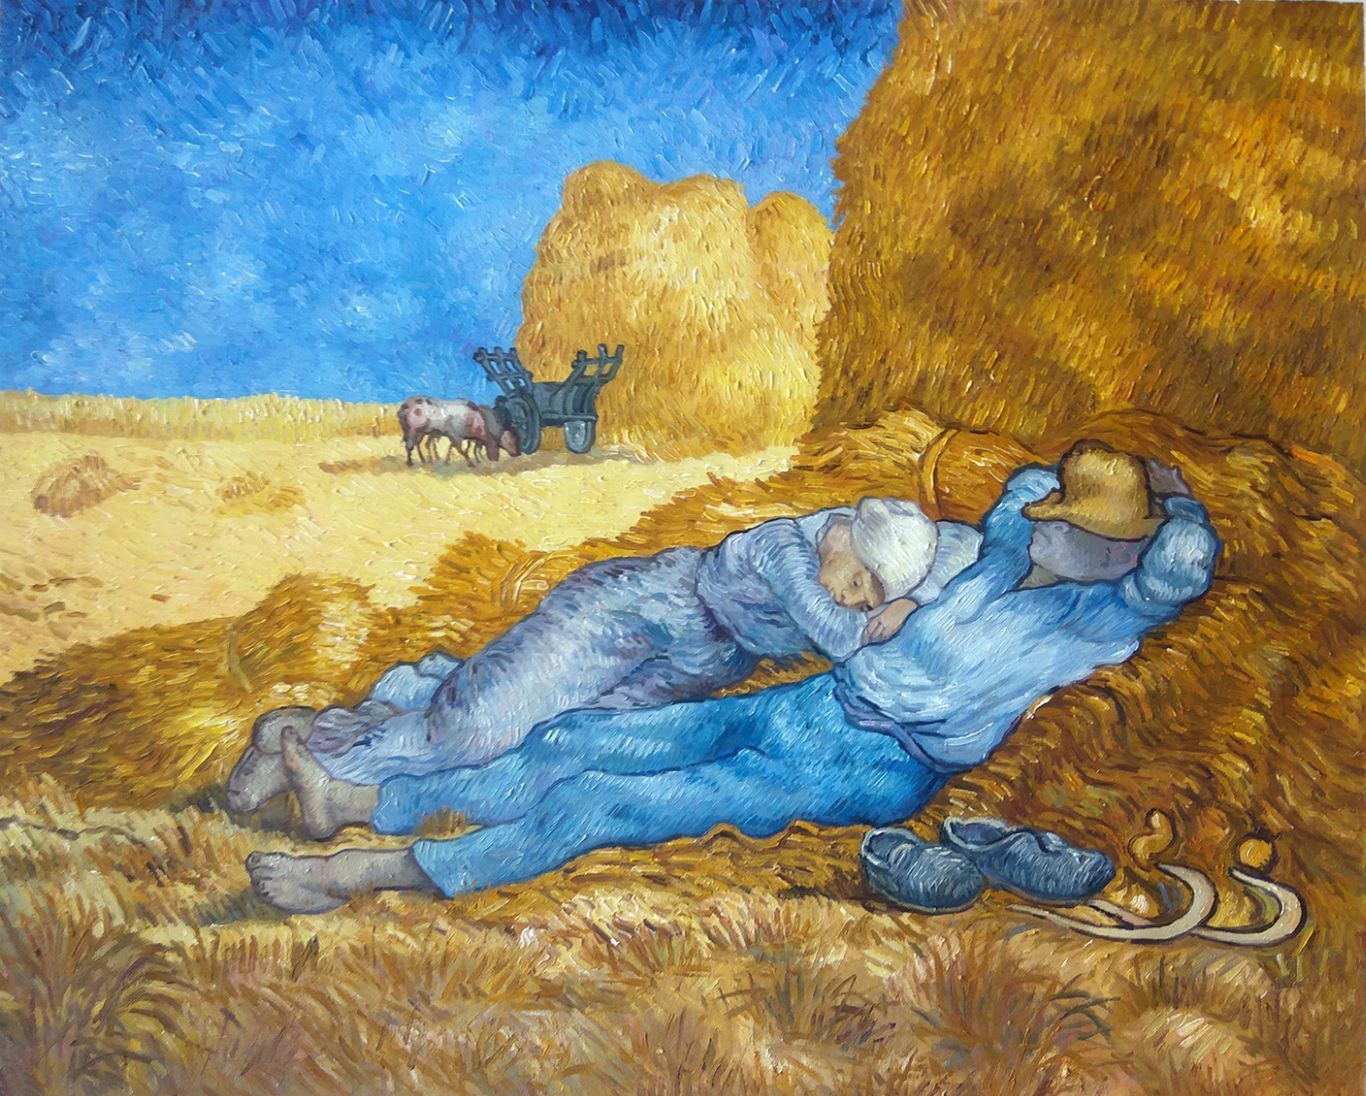 Noon, rest at Work repduction Van Gogh